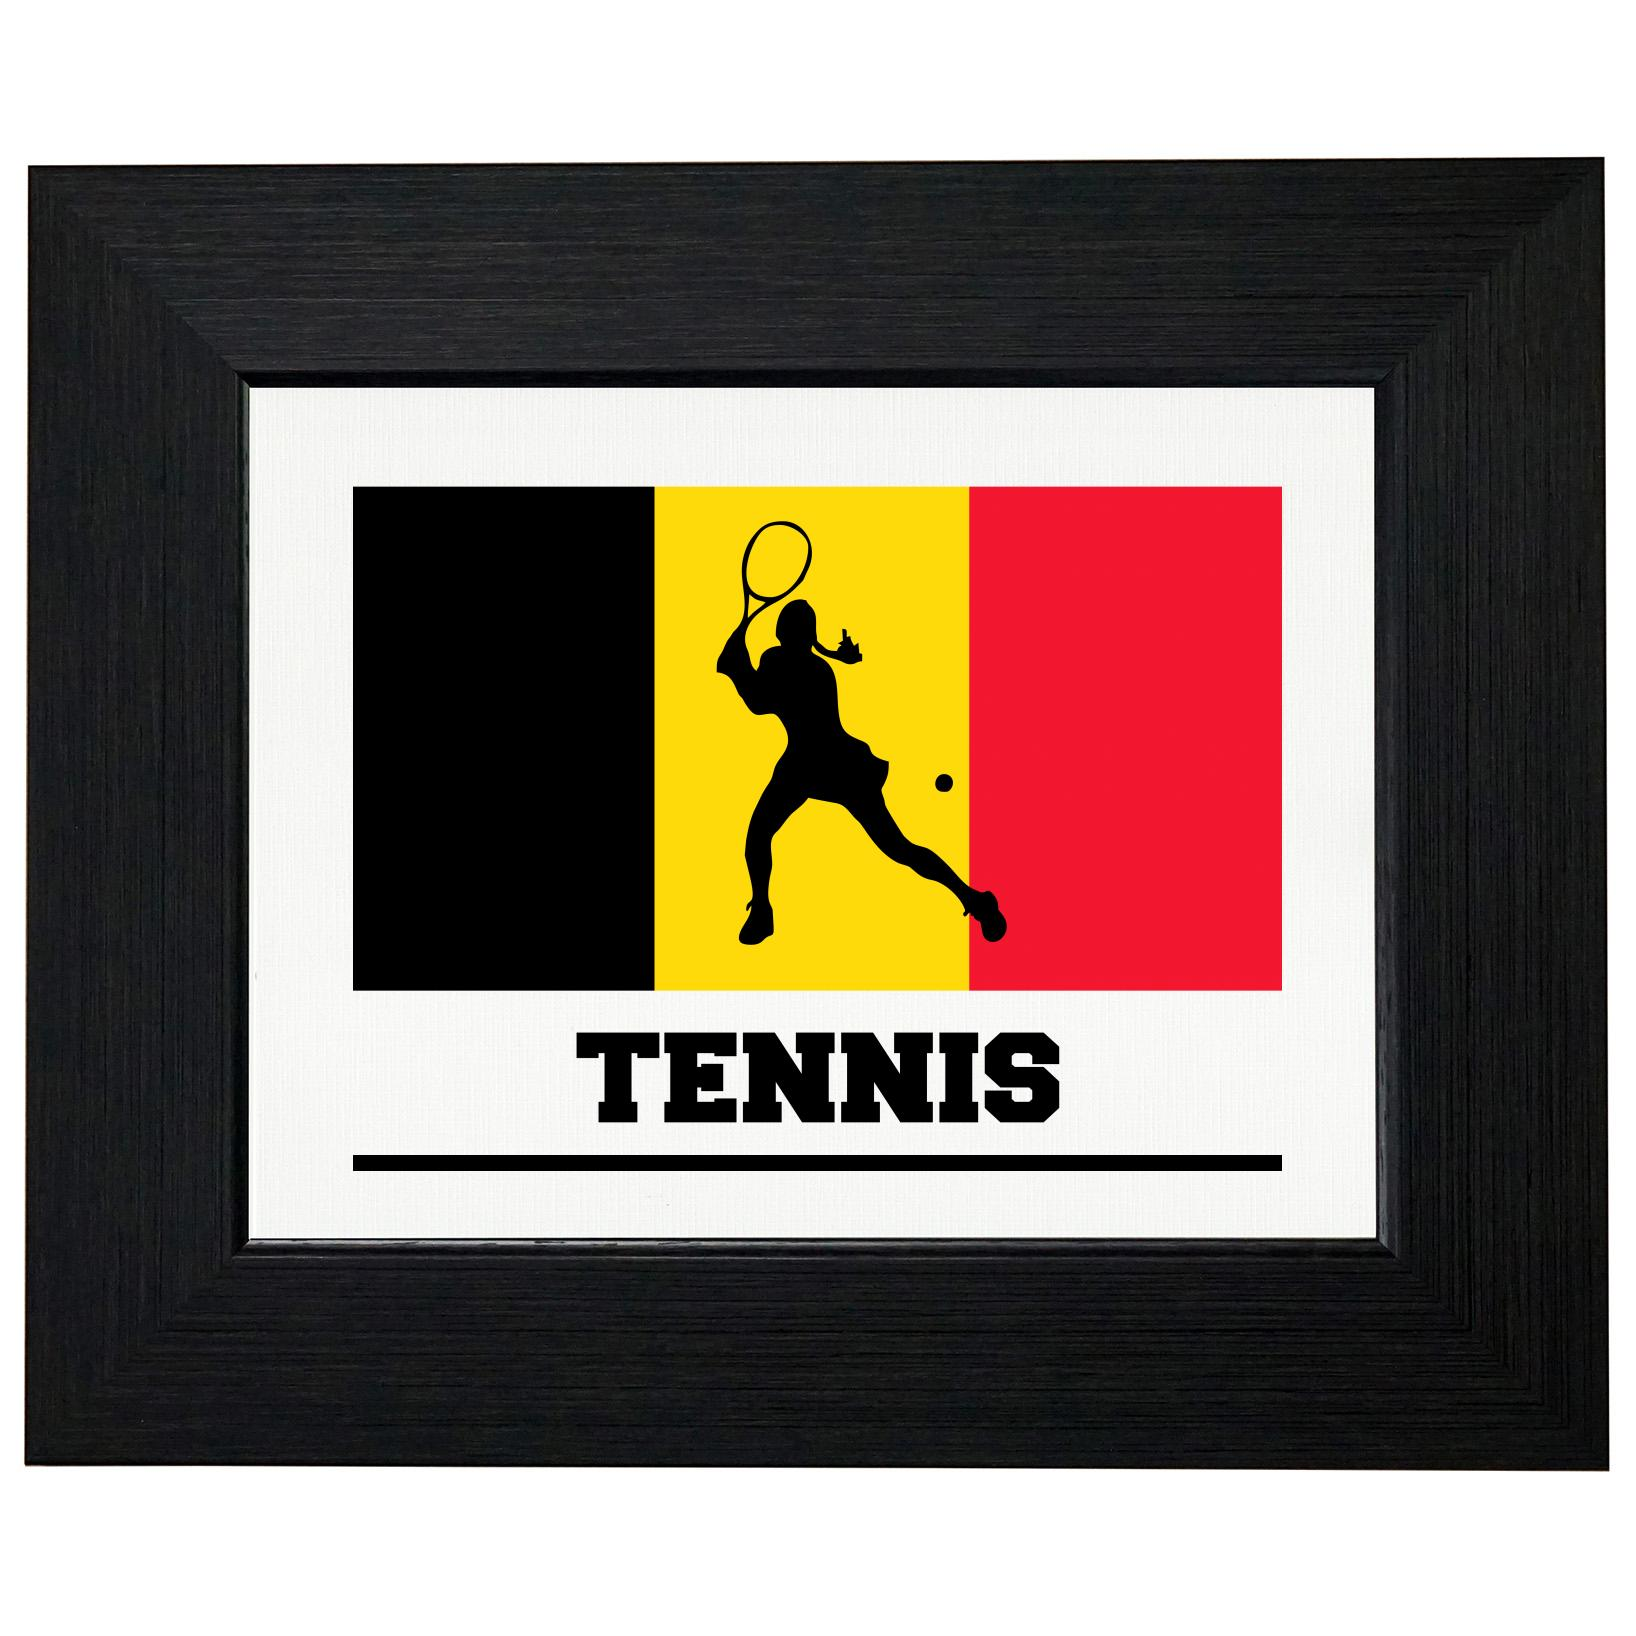 Belgium Olympic - Tennis - Flag - Silhouette Framed Print Poster Wall or Desk Mount Options